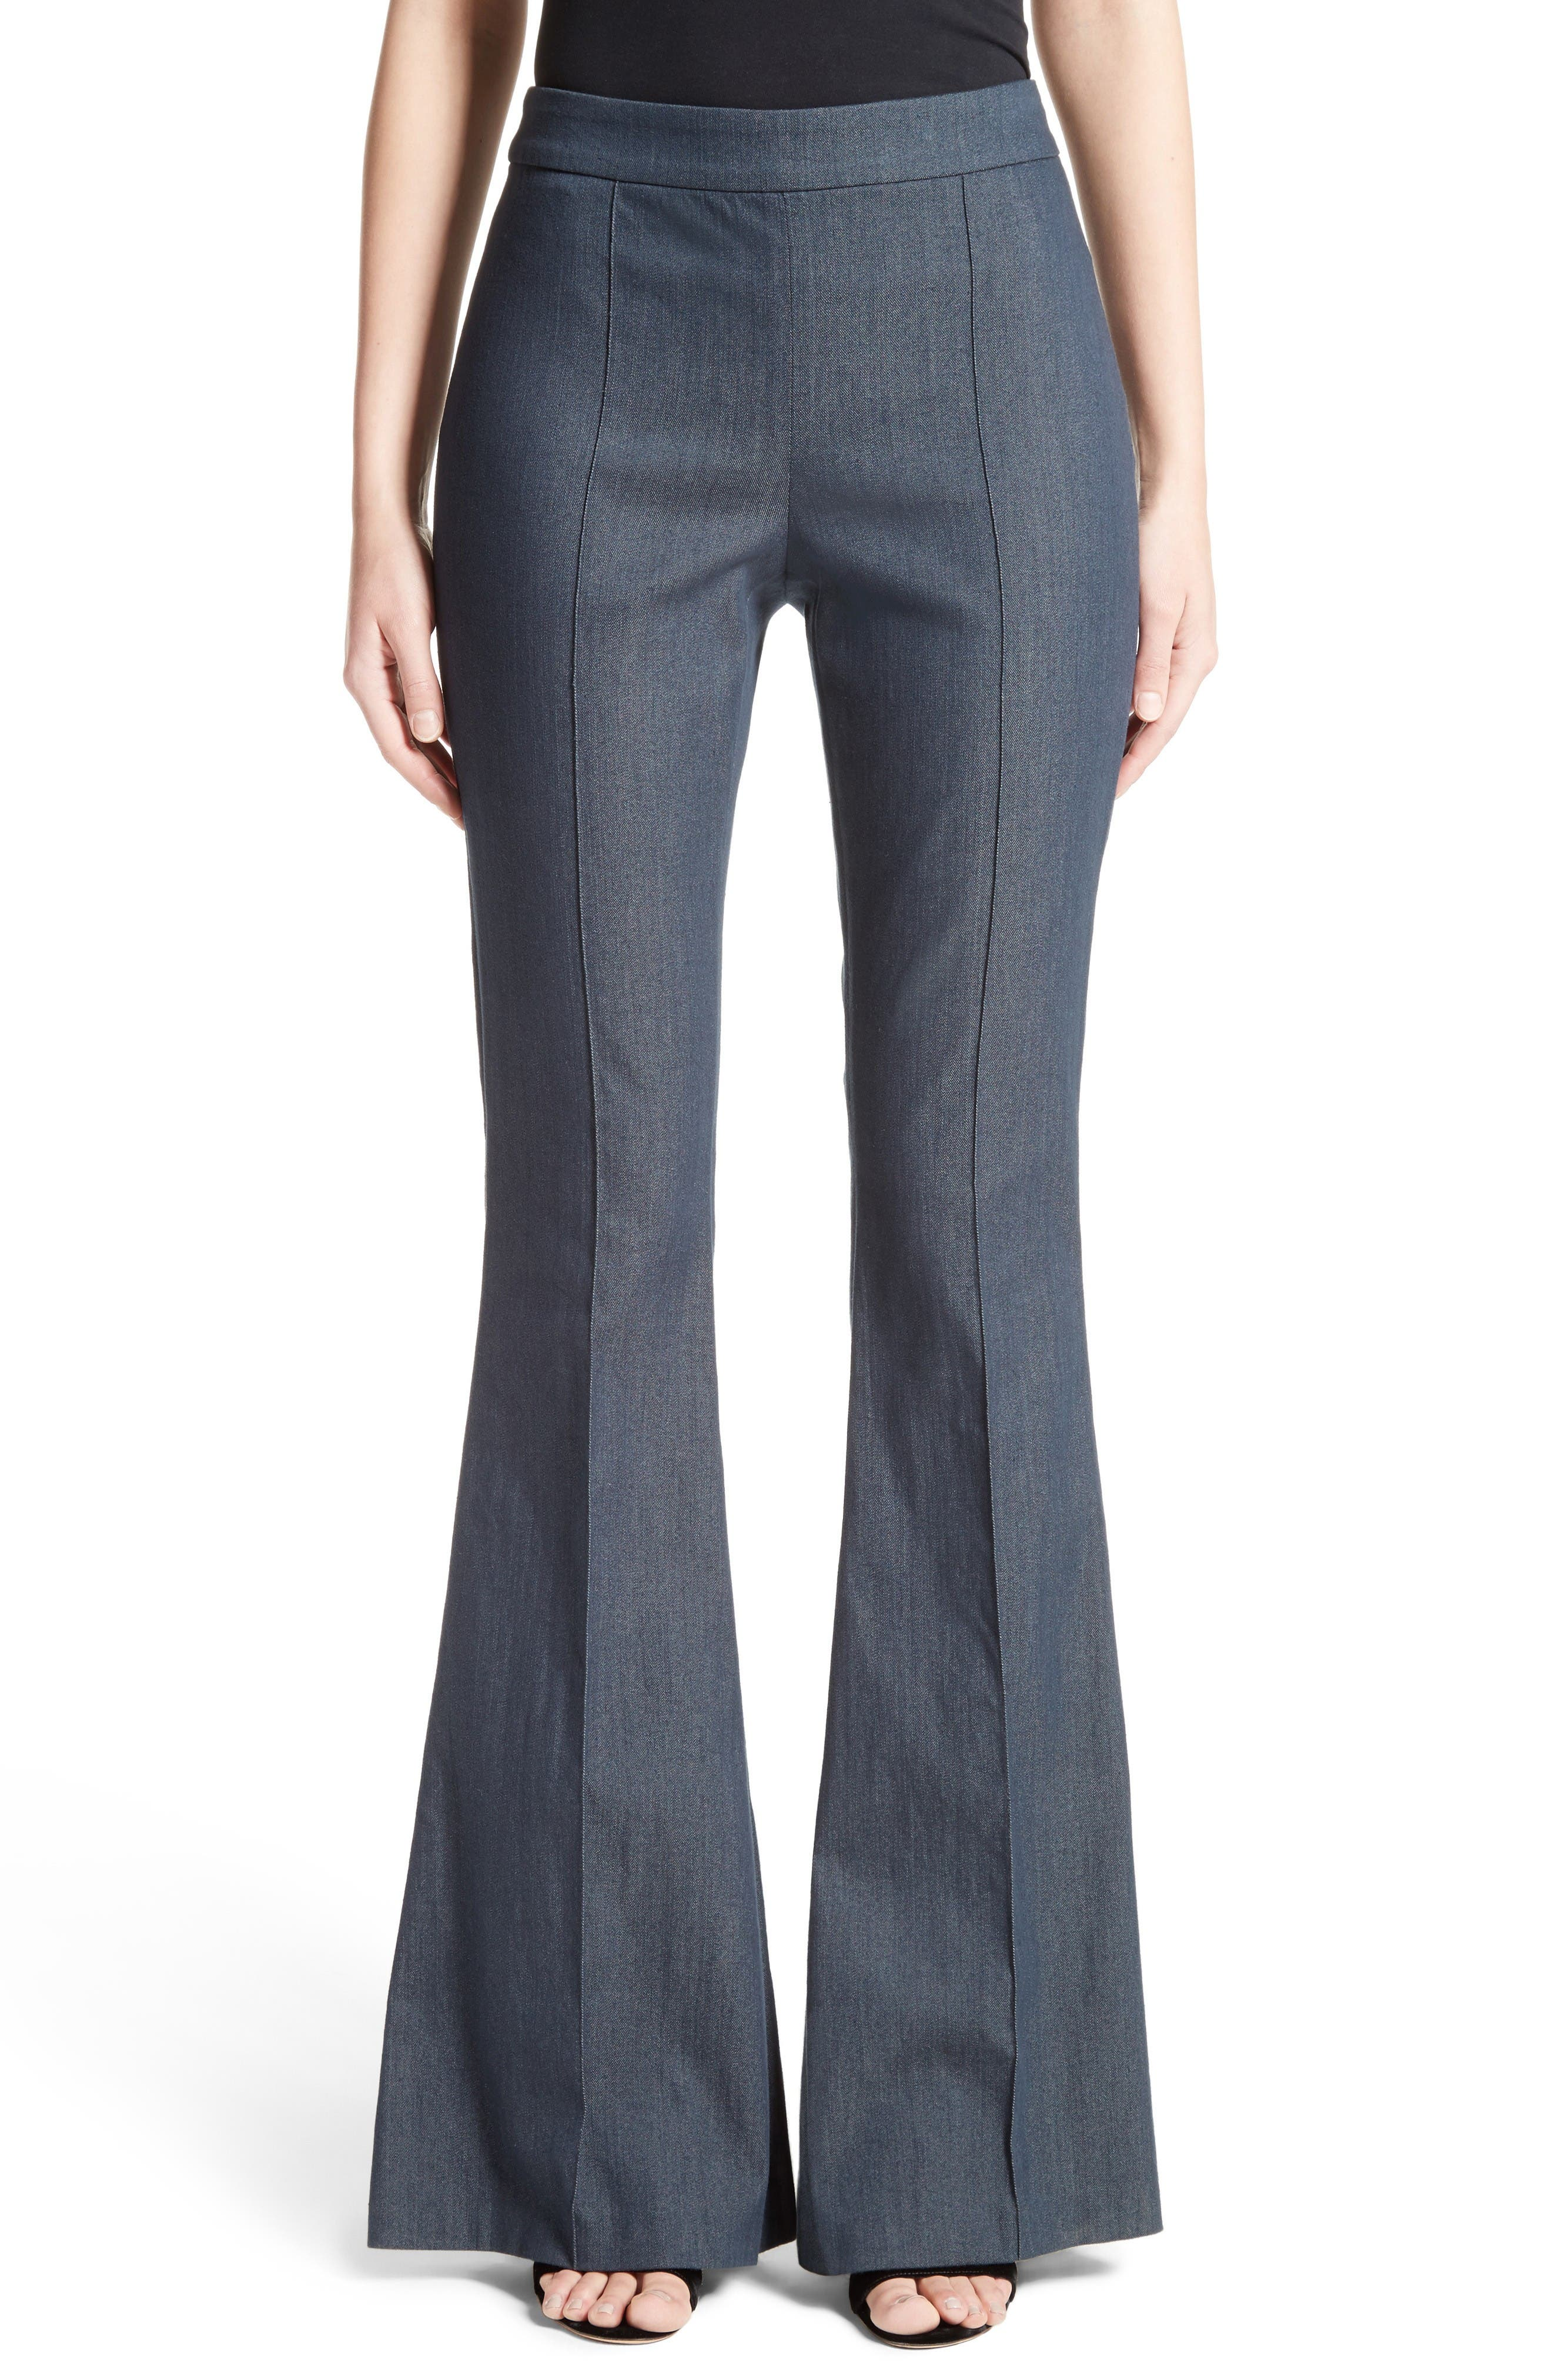 Alternate Image 1 Selected - St. John Collection Stretch Denim Flare Pants